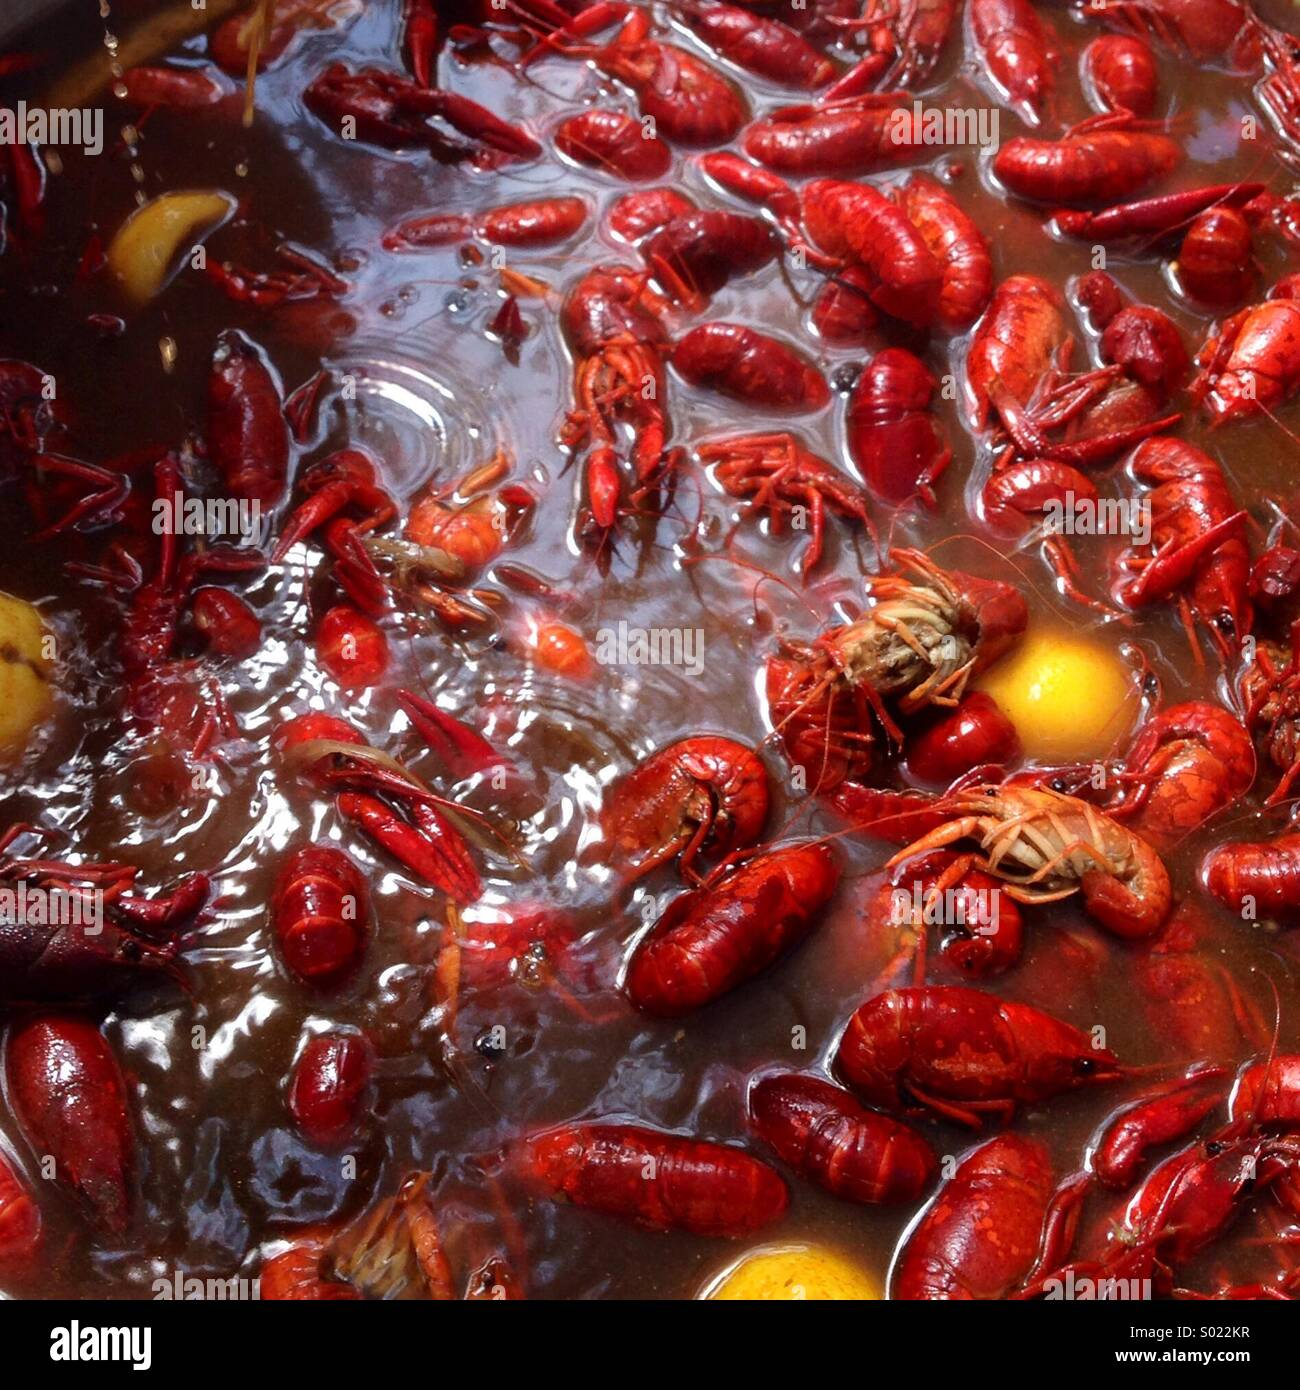 Wild caught Louisiana crawfish boil. - Stock Image